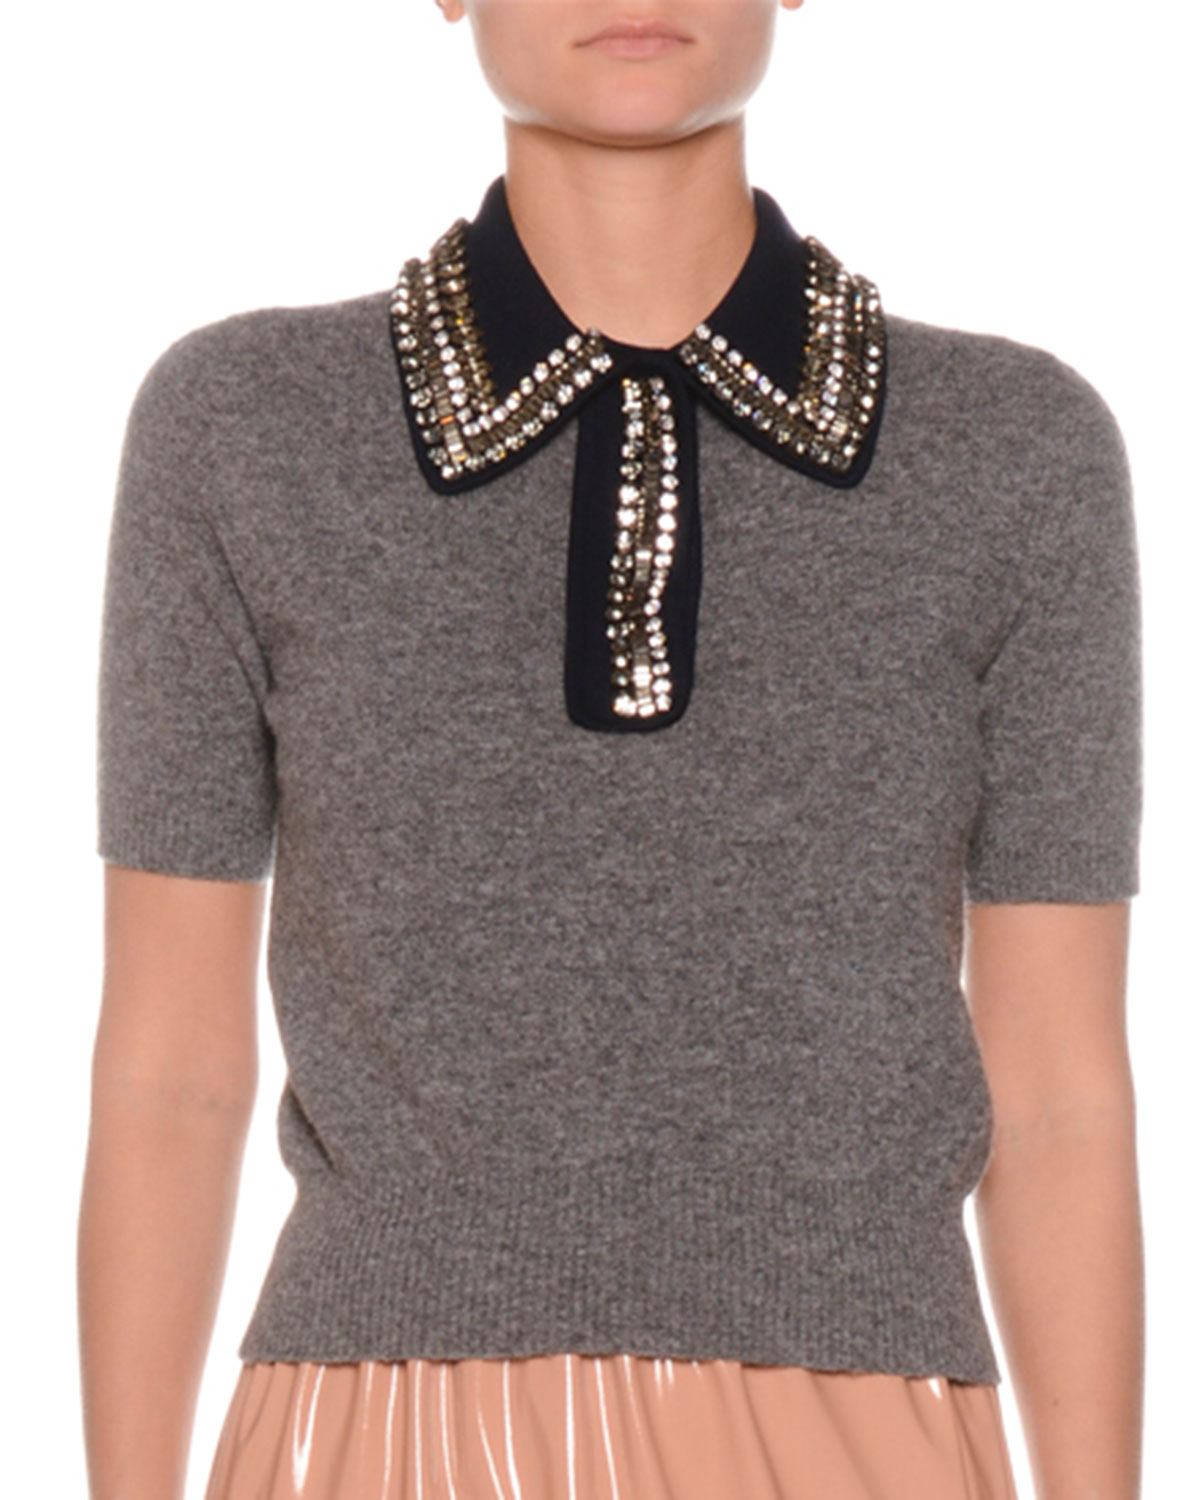 N°21 CROPPED SHORT-SLEEVE TOP WITH EMBELLISHED COLLAR